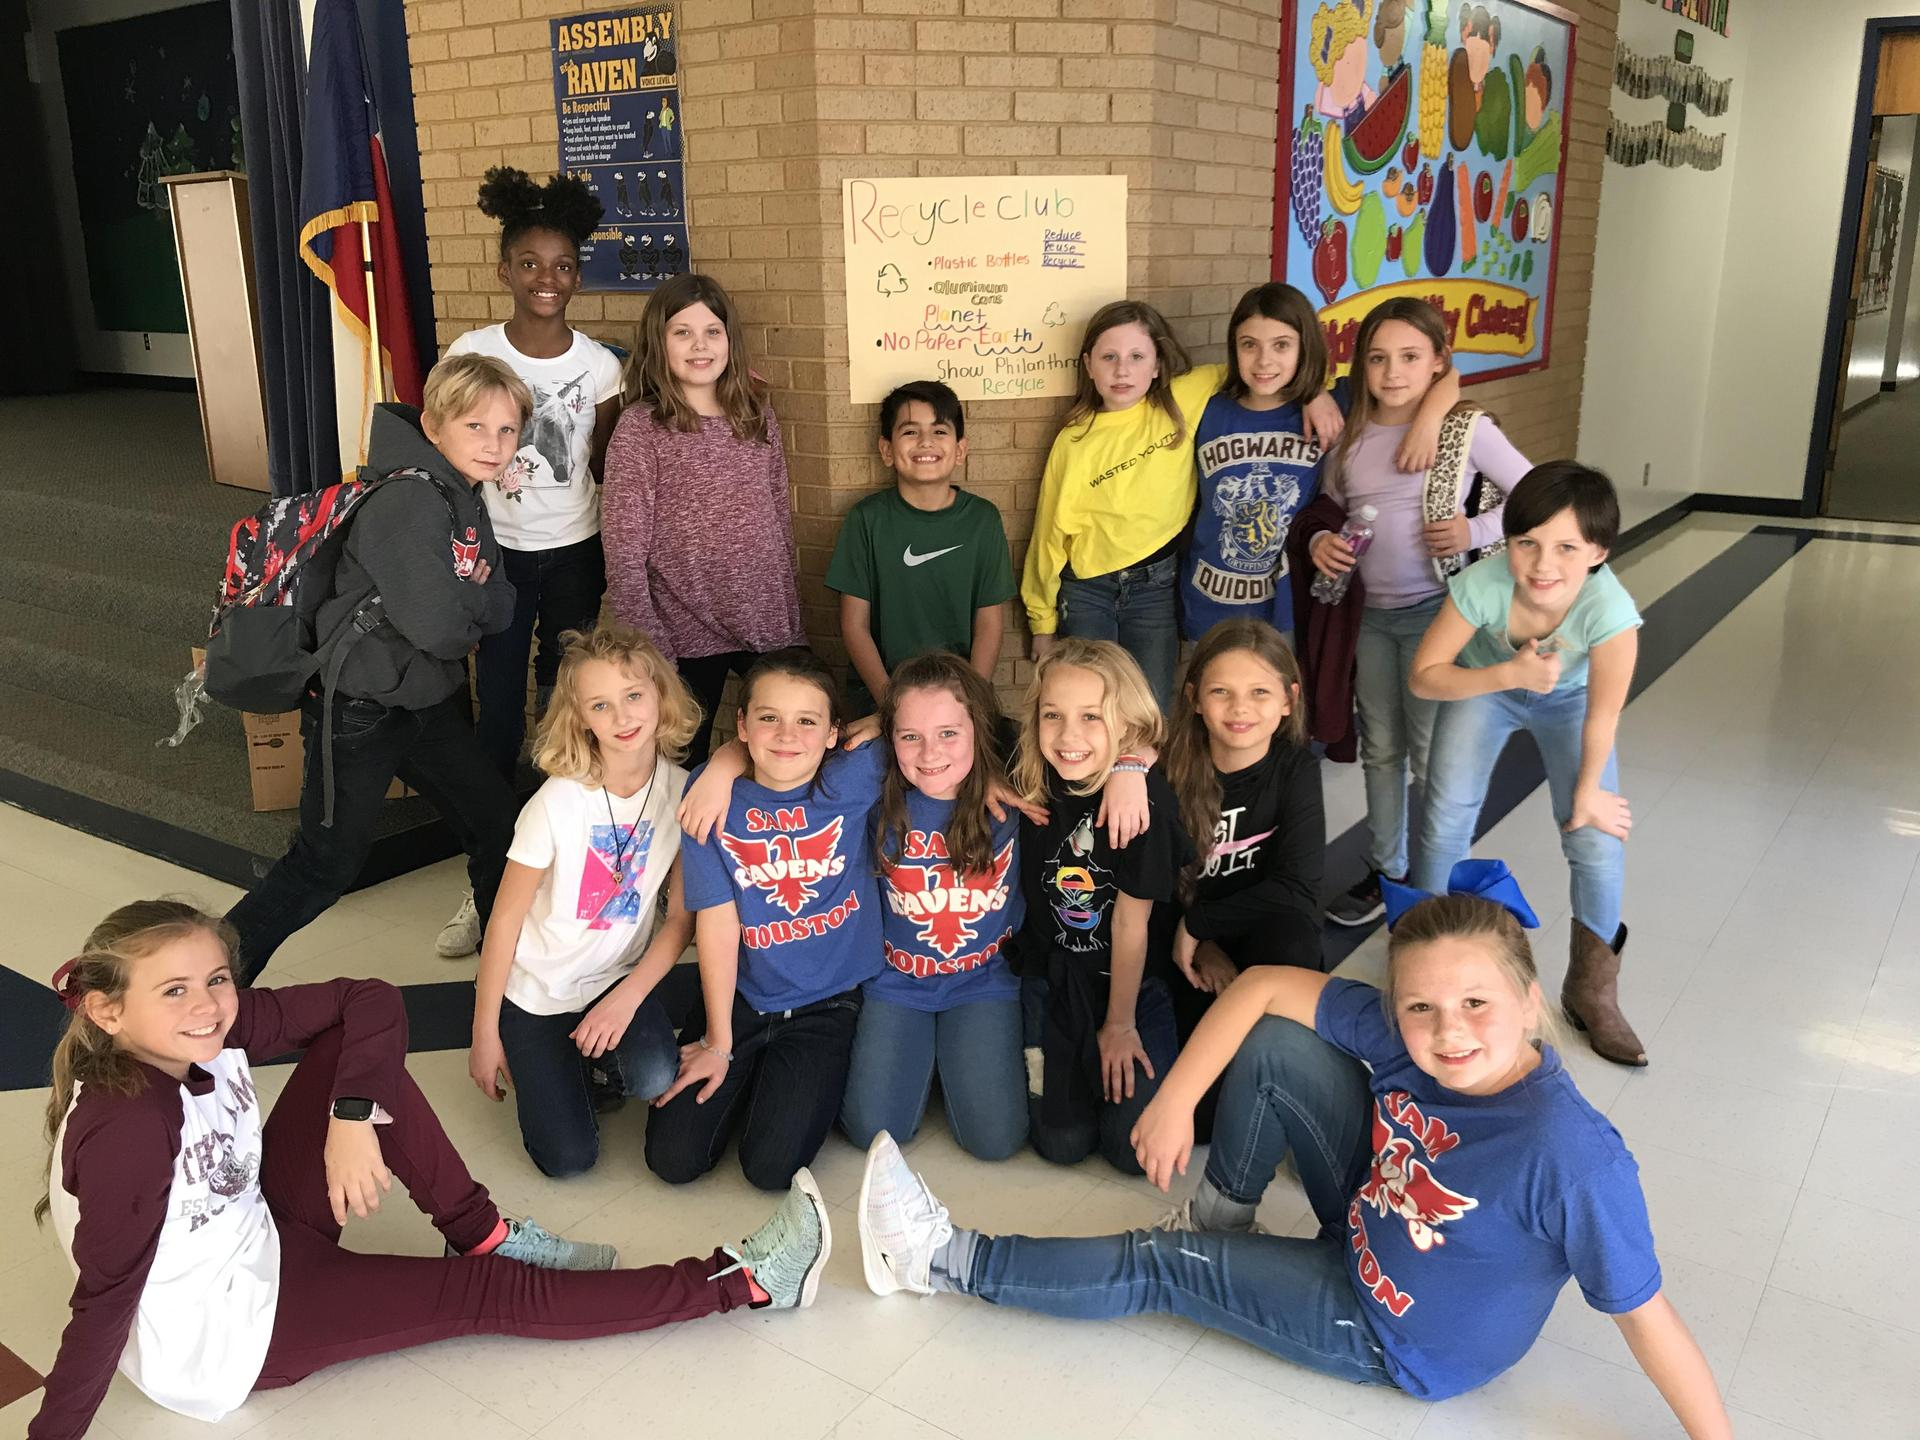 Houston Elementary School Student Council